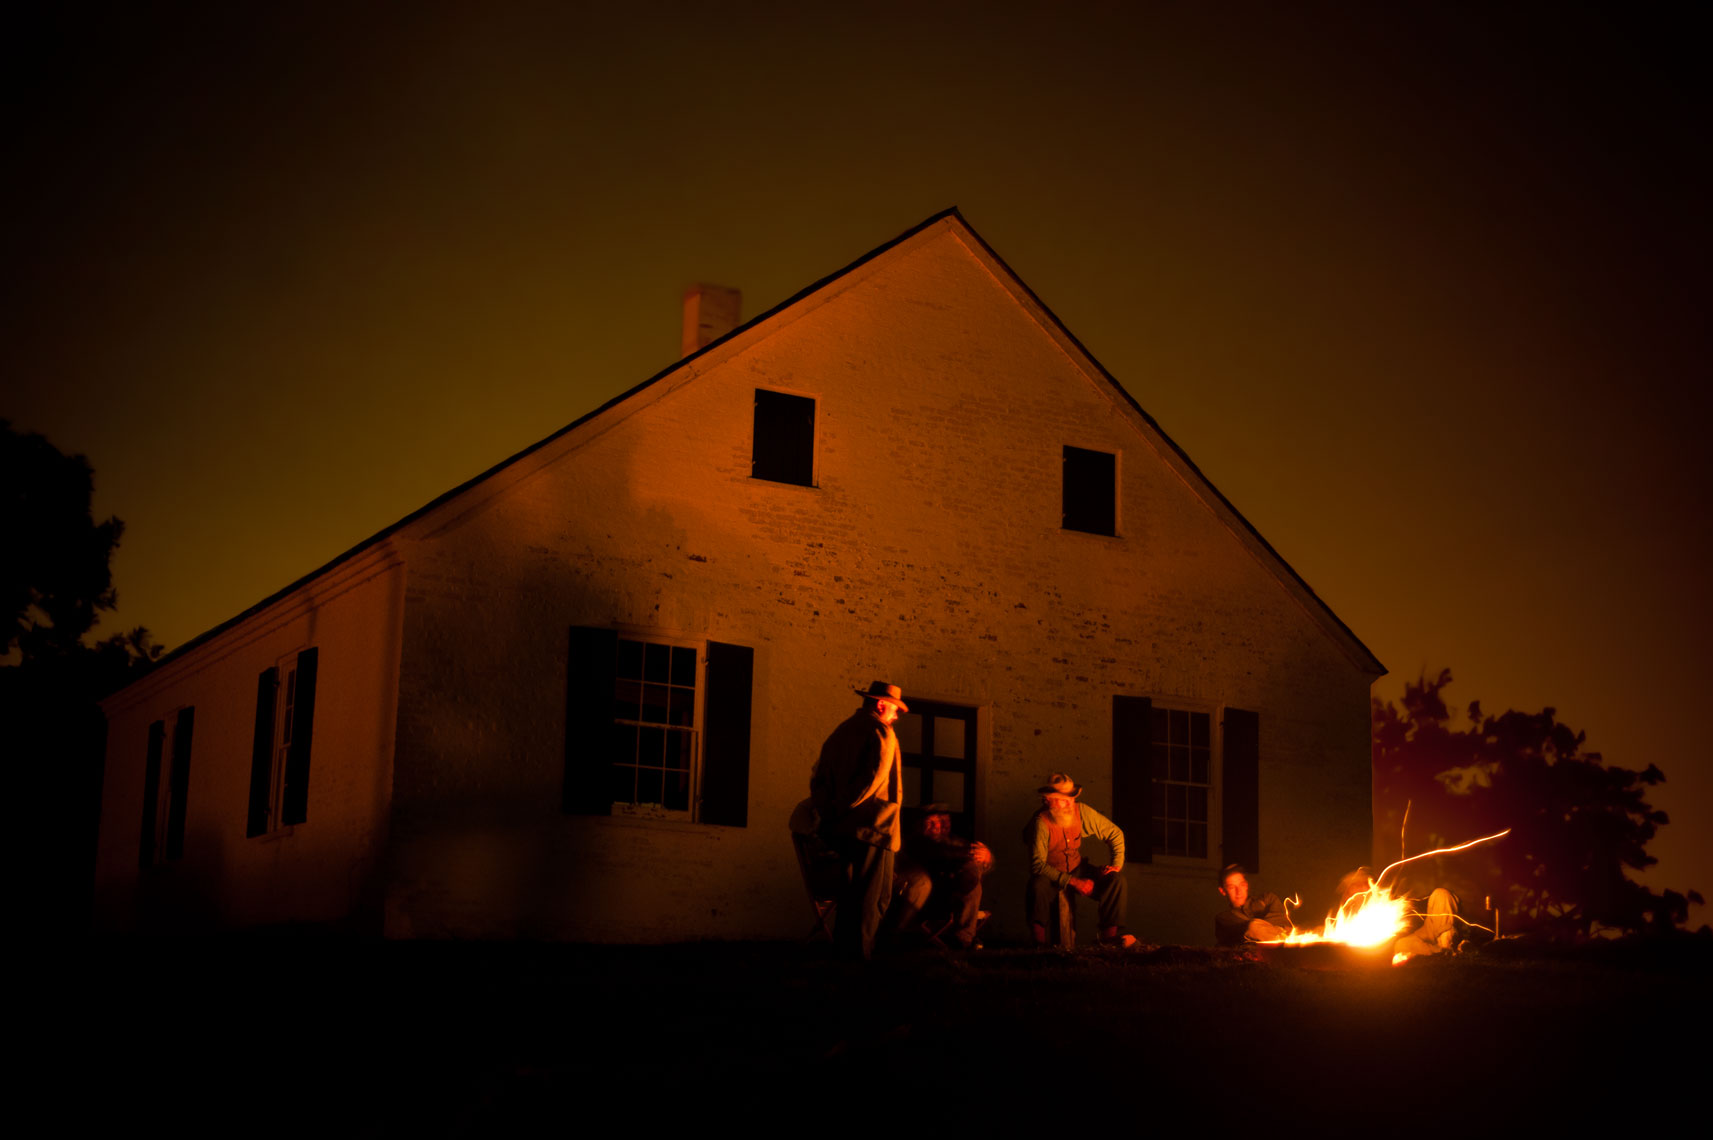 Civil War reenactors at Antietam: men sit around the campfire in front of historic Dunker Church on the battlefield